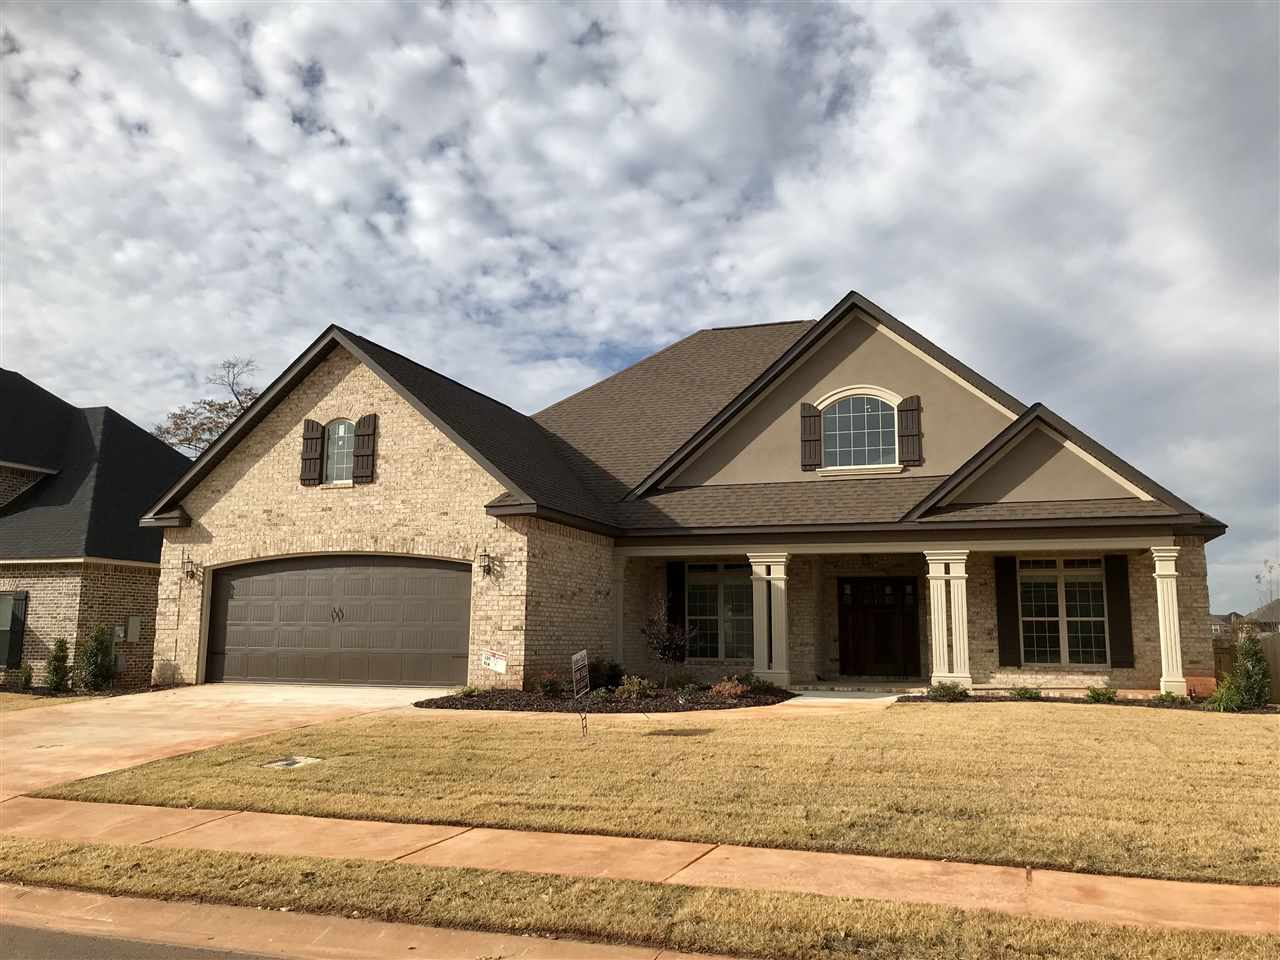 307 Angelina Grace Drive, Warner Robins, GA